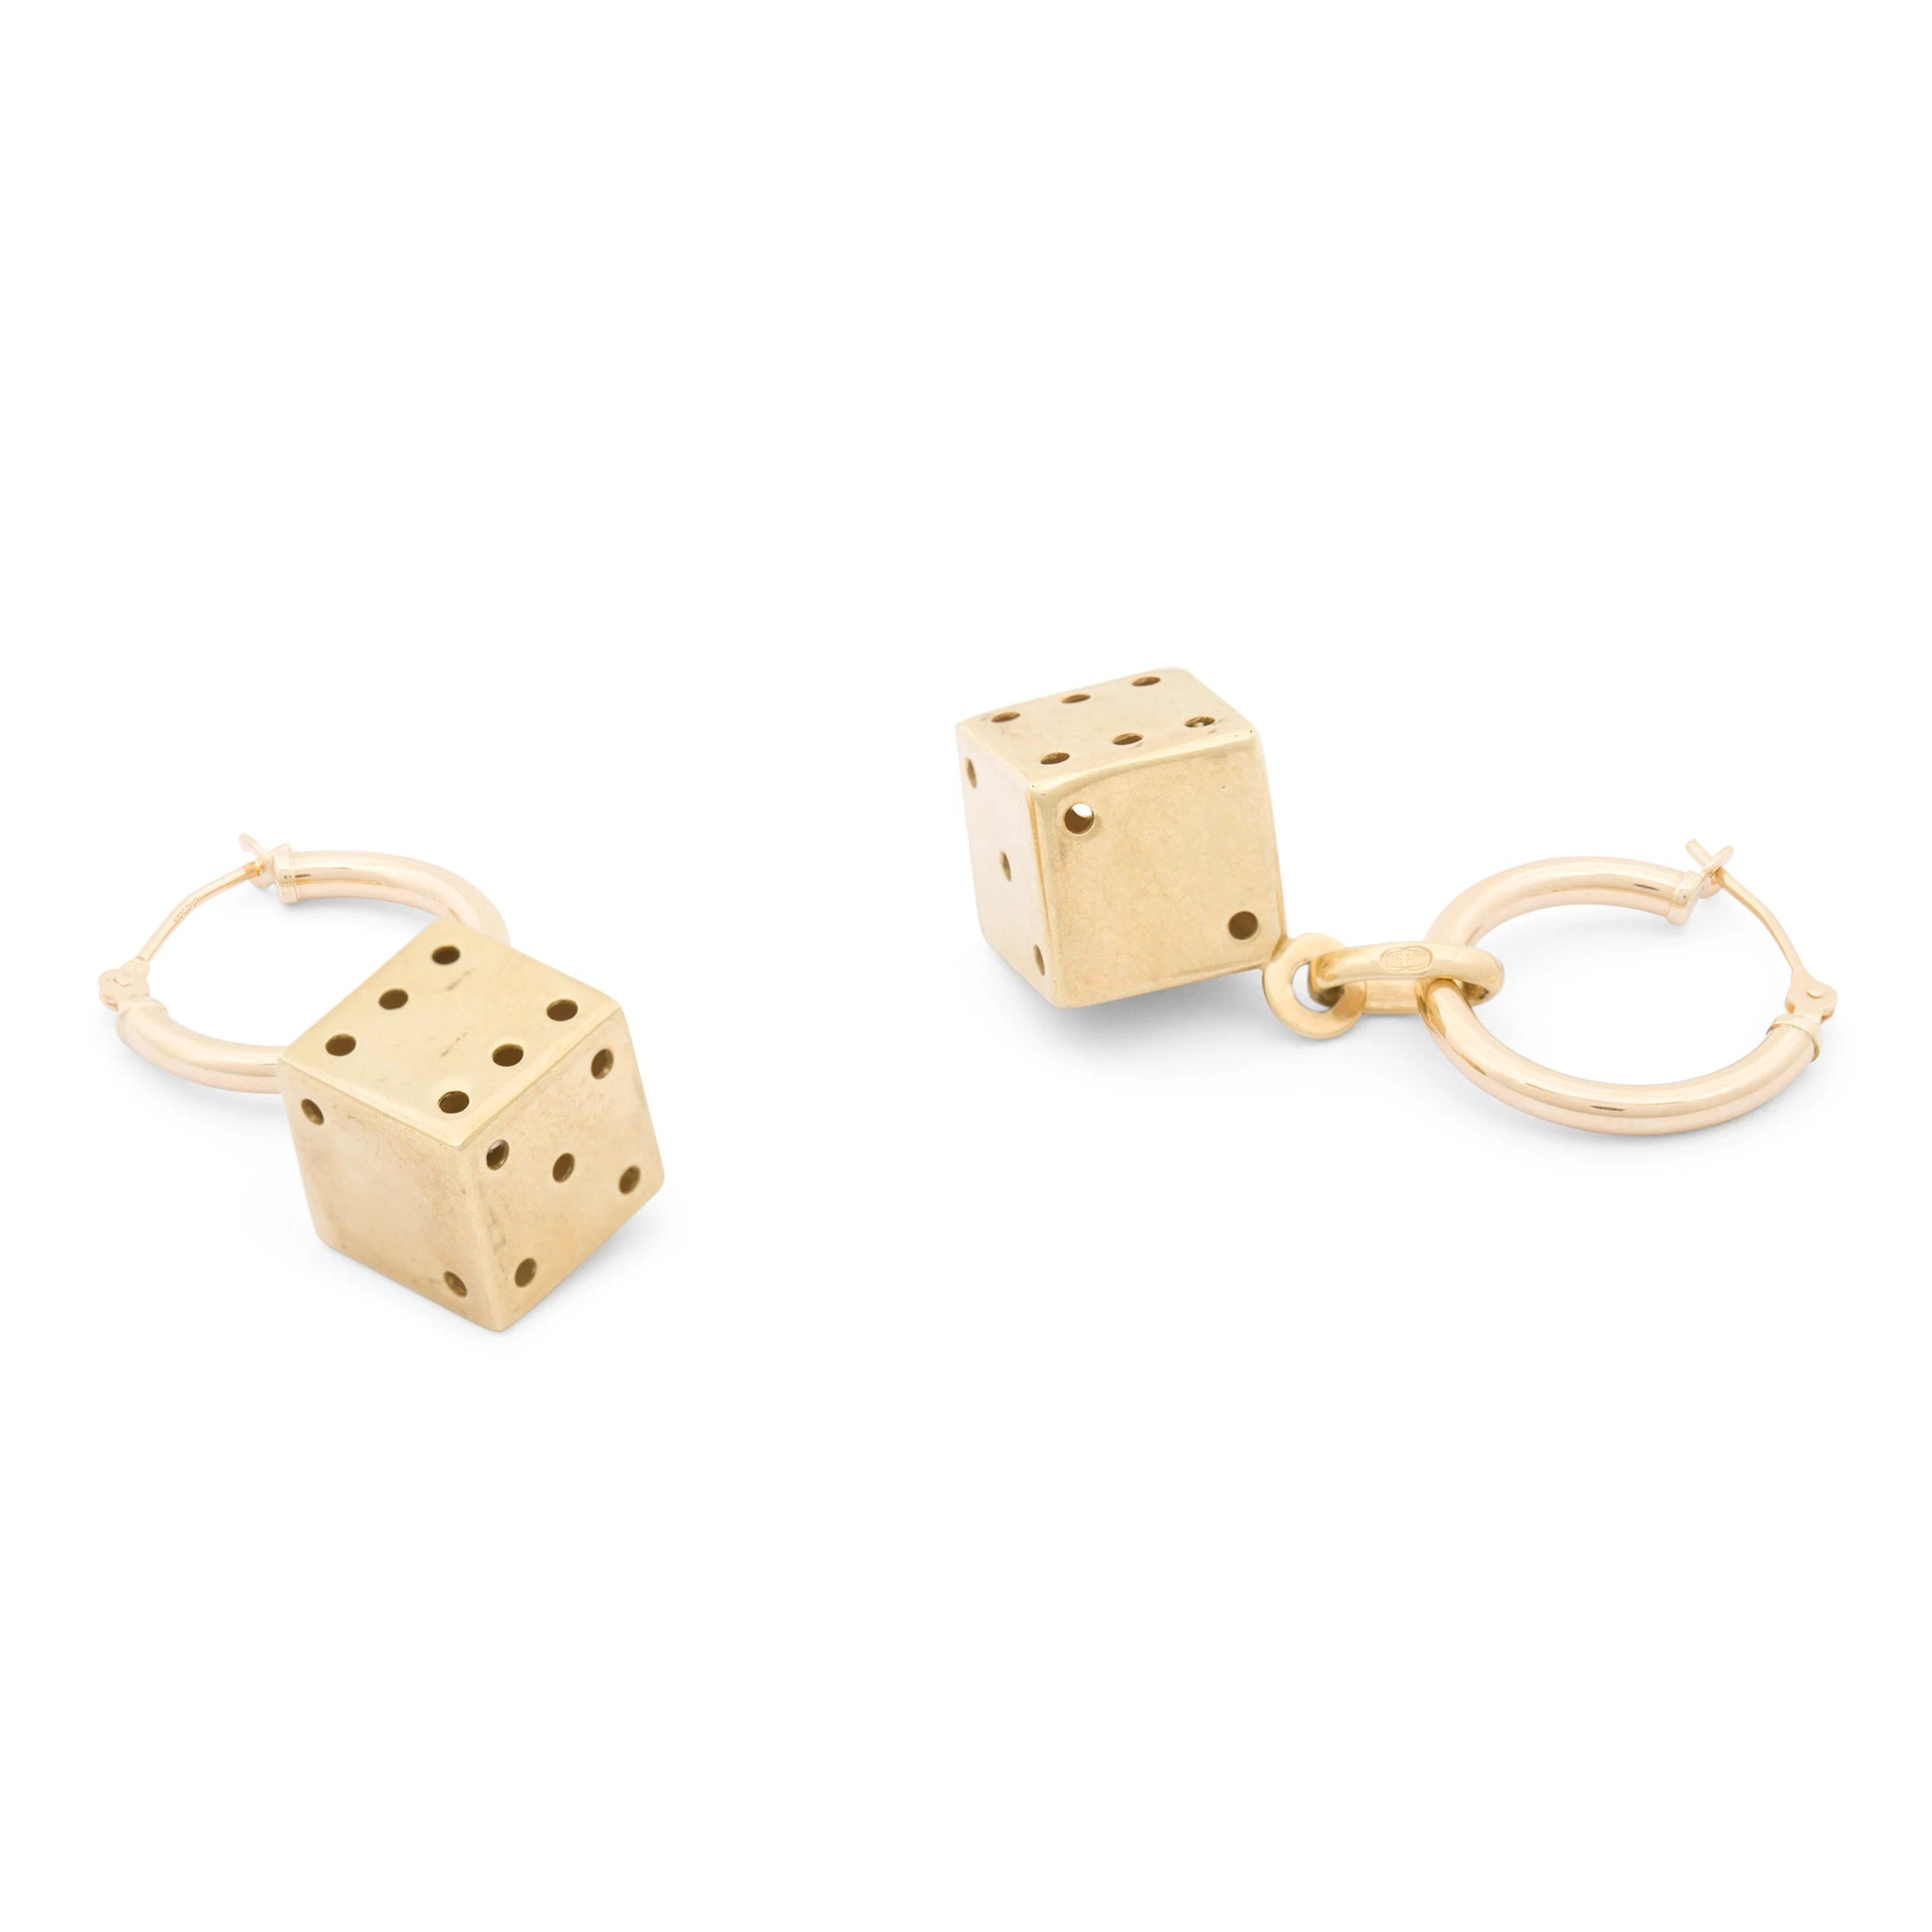 Italian 14k Gold Dice Charm Earrings